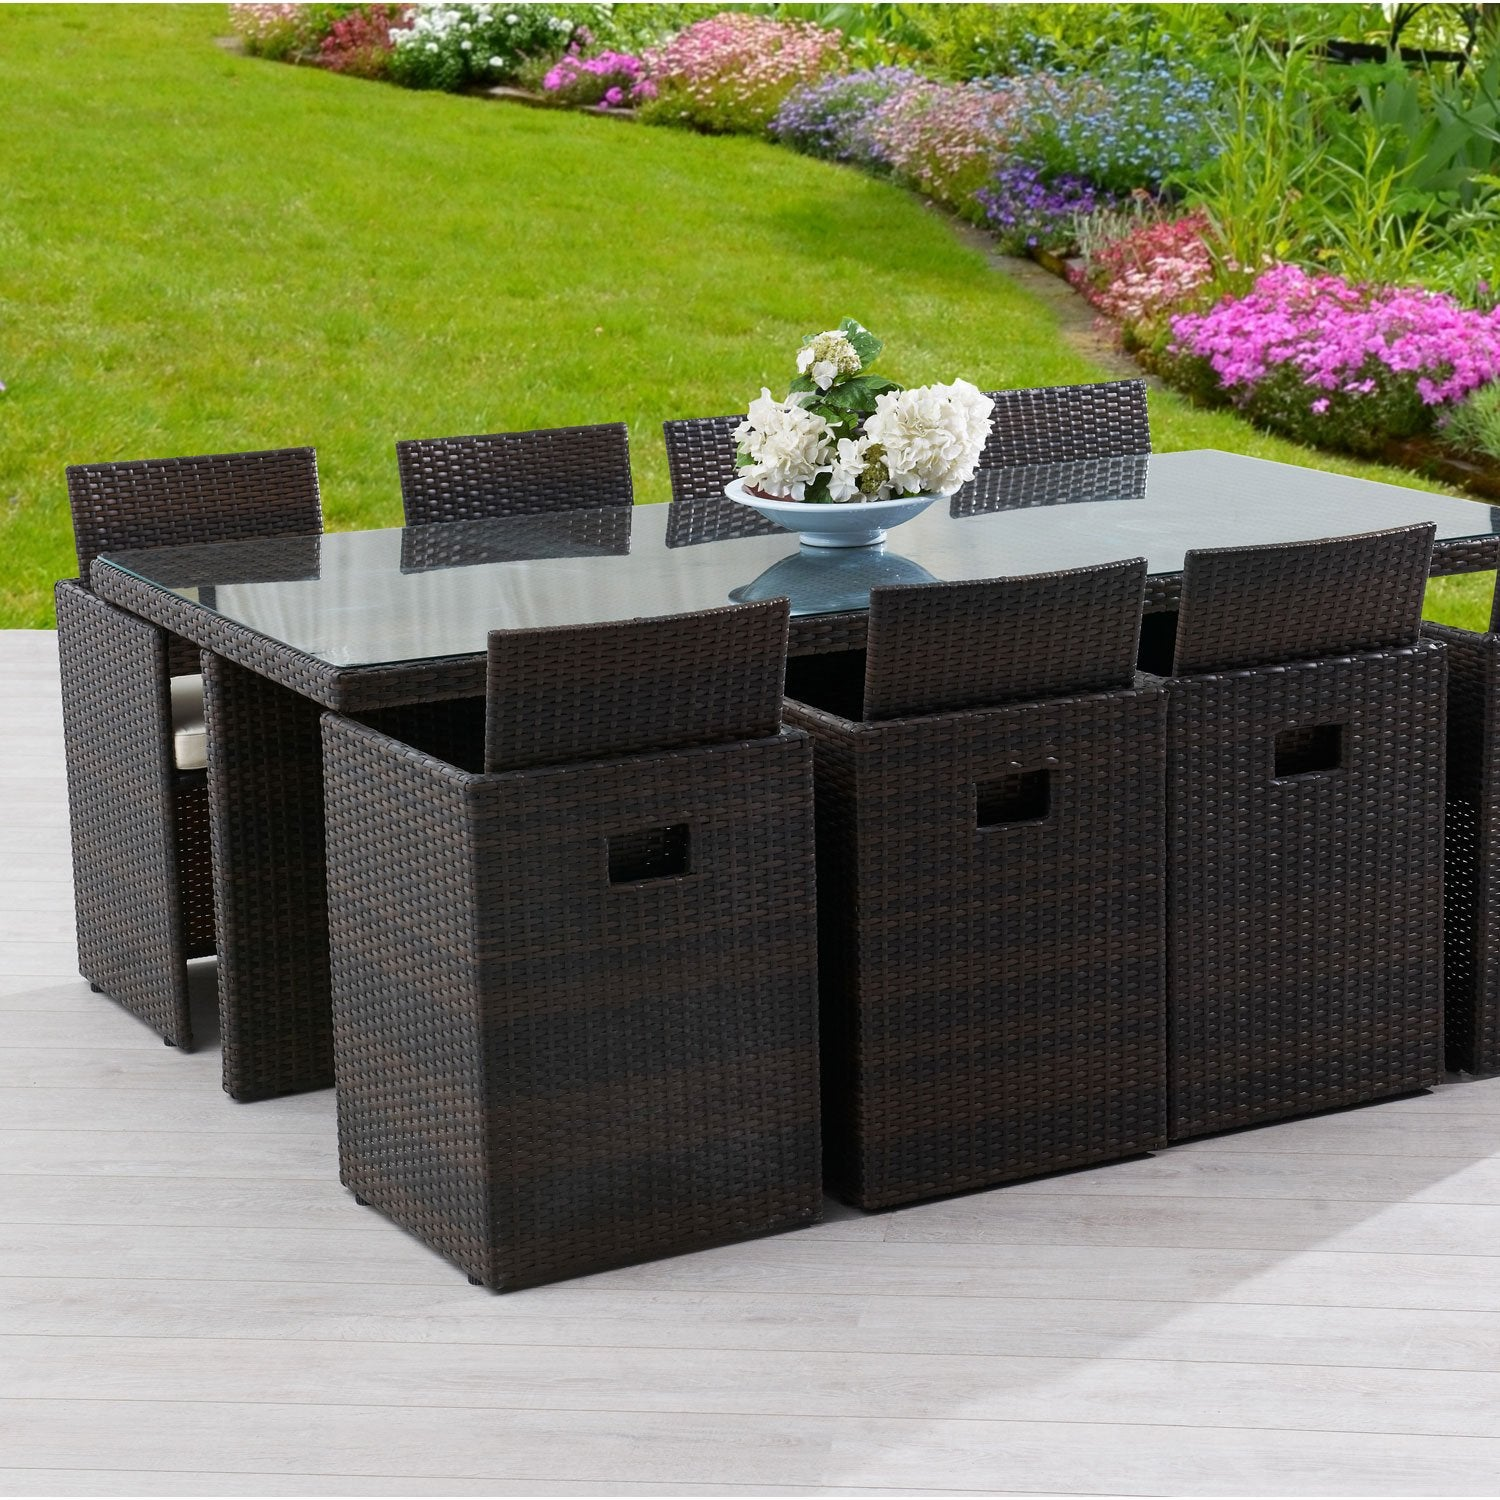 Salon de jardin encastrable r sine tress e marron 1 table for Salon de jardin exterieur resine